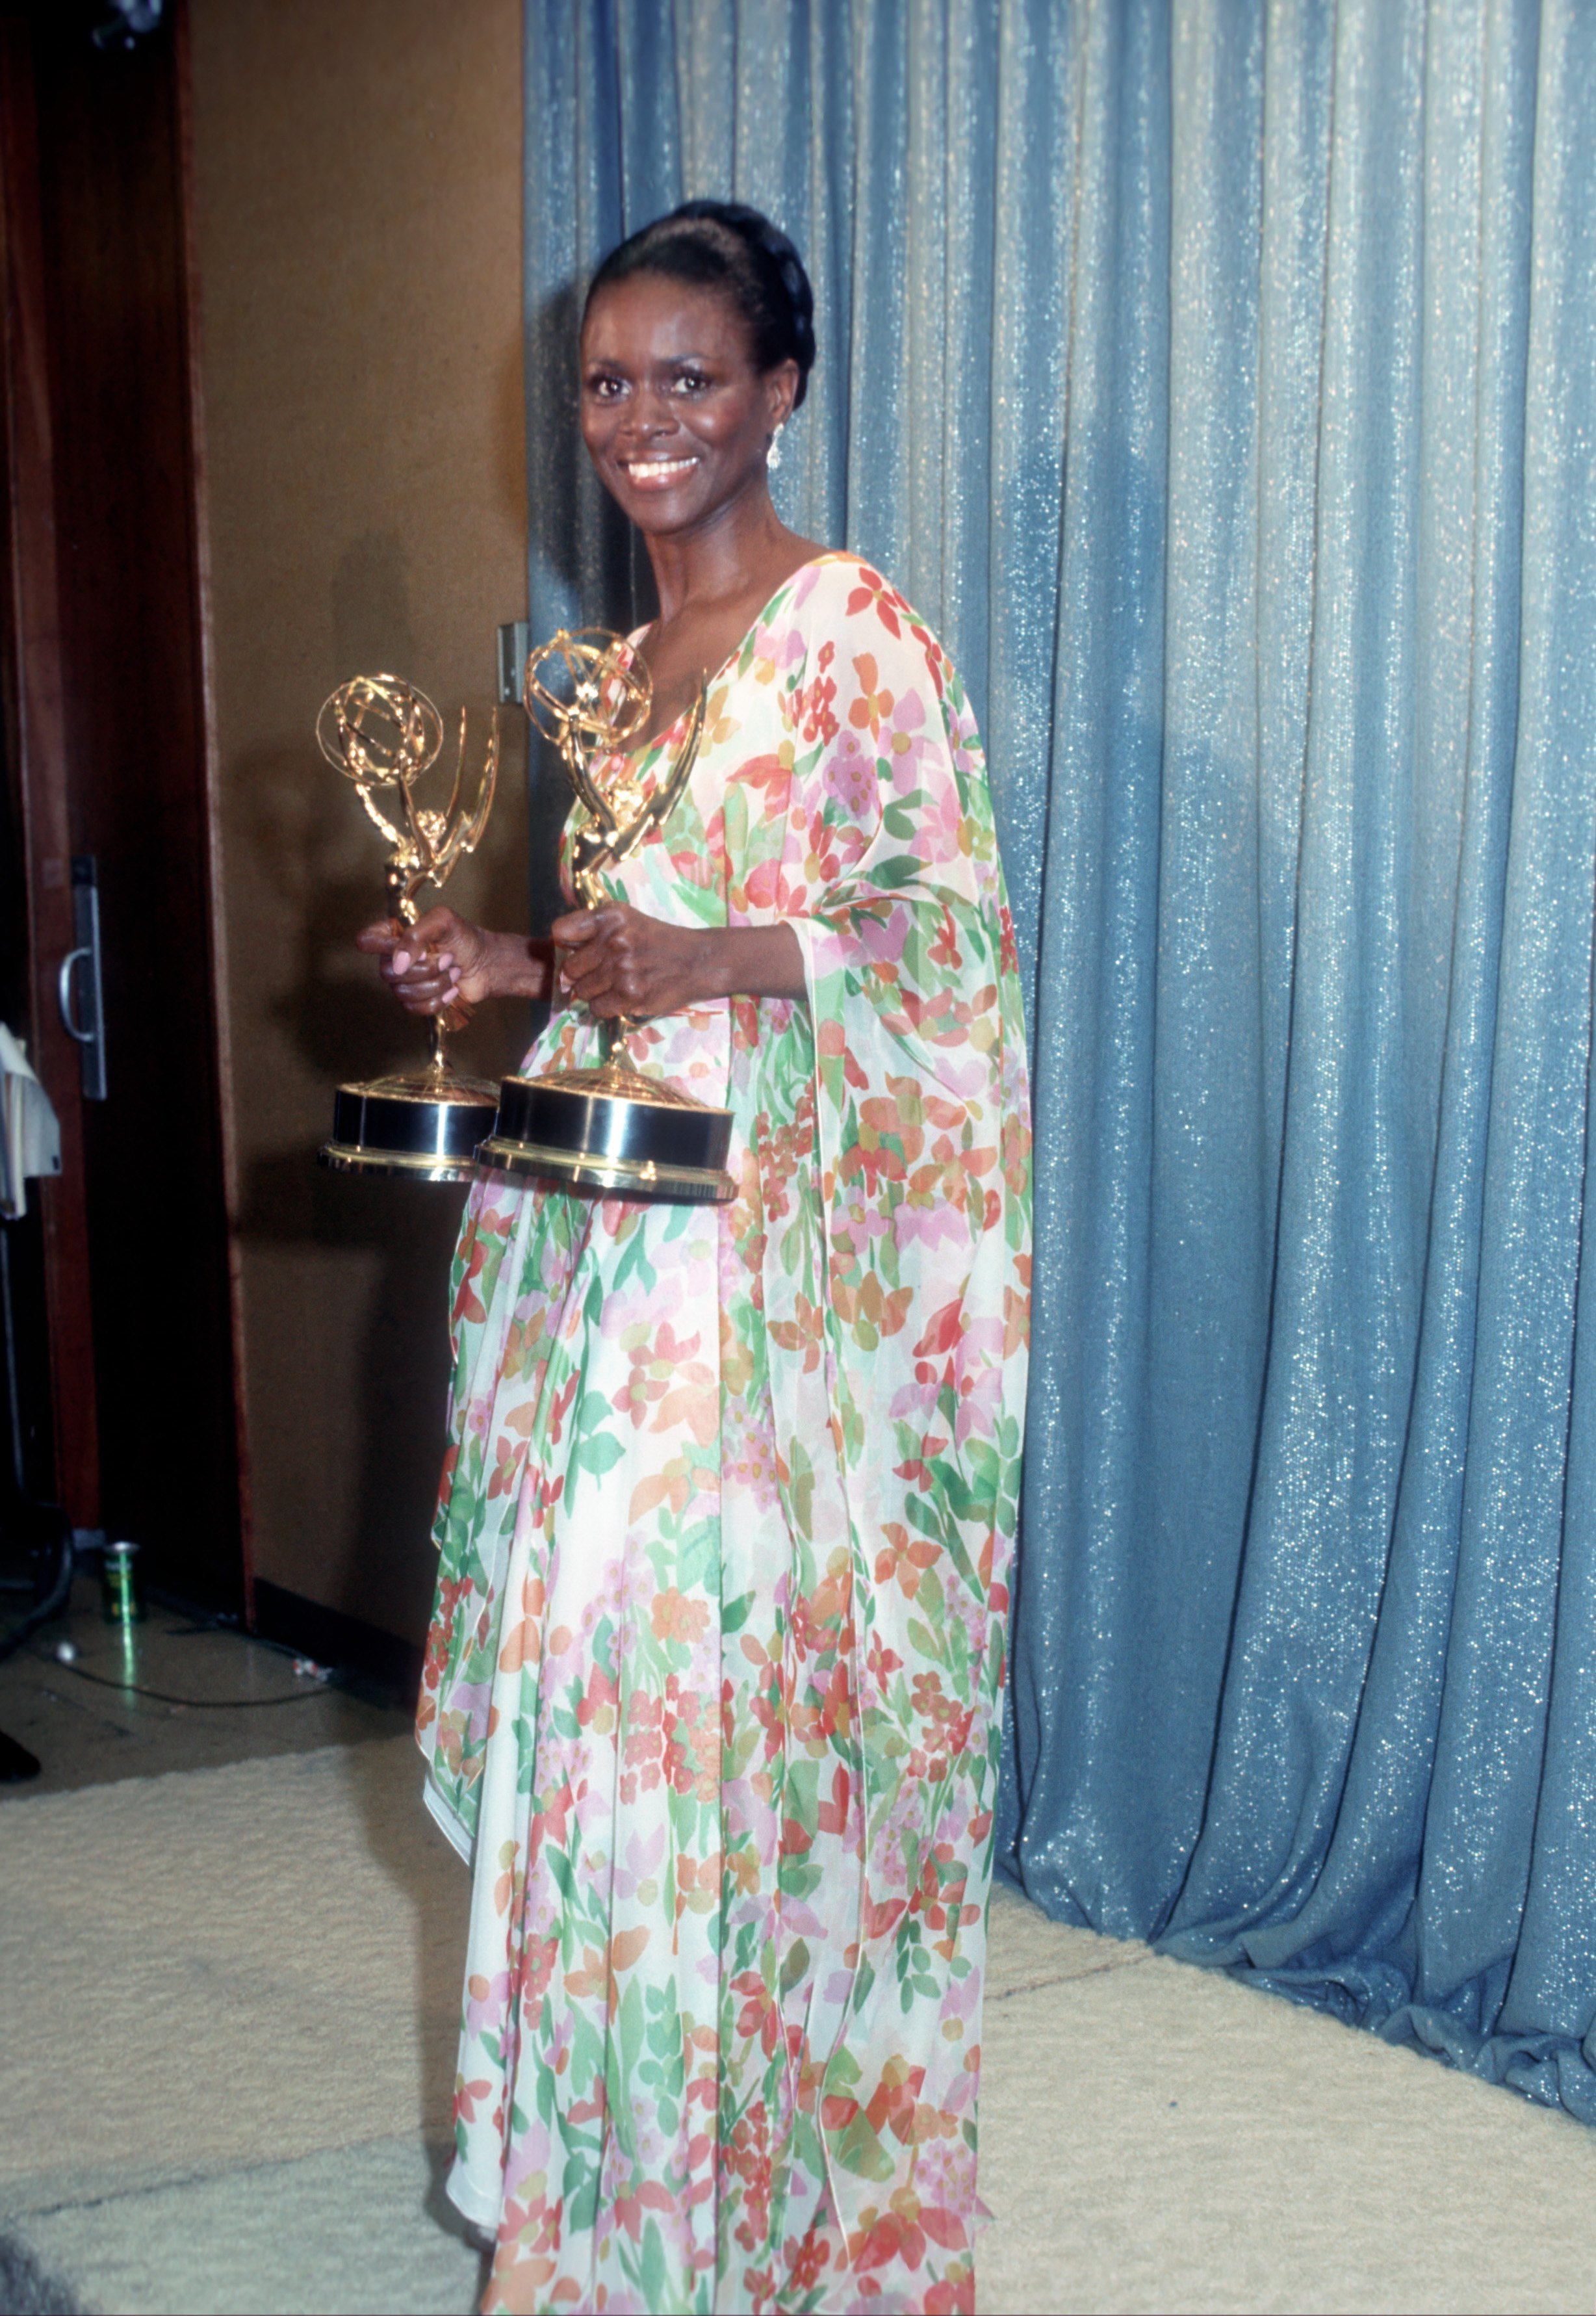 """Cicely Tyson holds the two Emmy Awards she won for her performance in """"The Autobiography Of Miss Jane Pittman"""" on May 28, 1974 in Los Angeles, California.